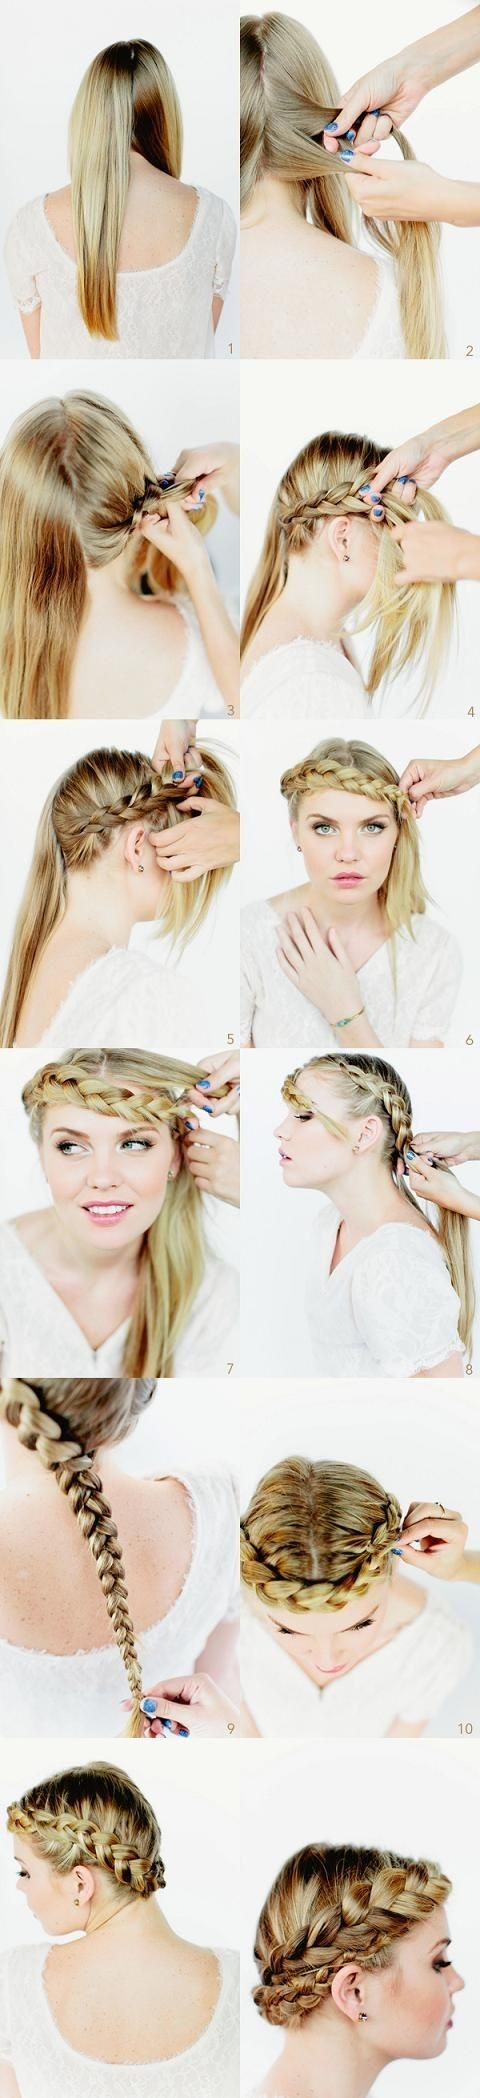 Crown Braided Hairstyles Tutorials: Long Hairstyle